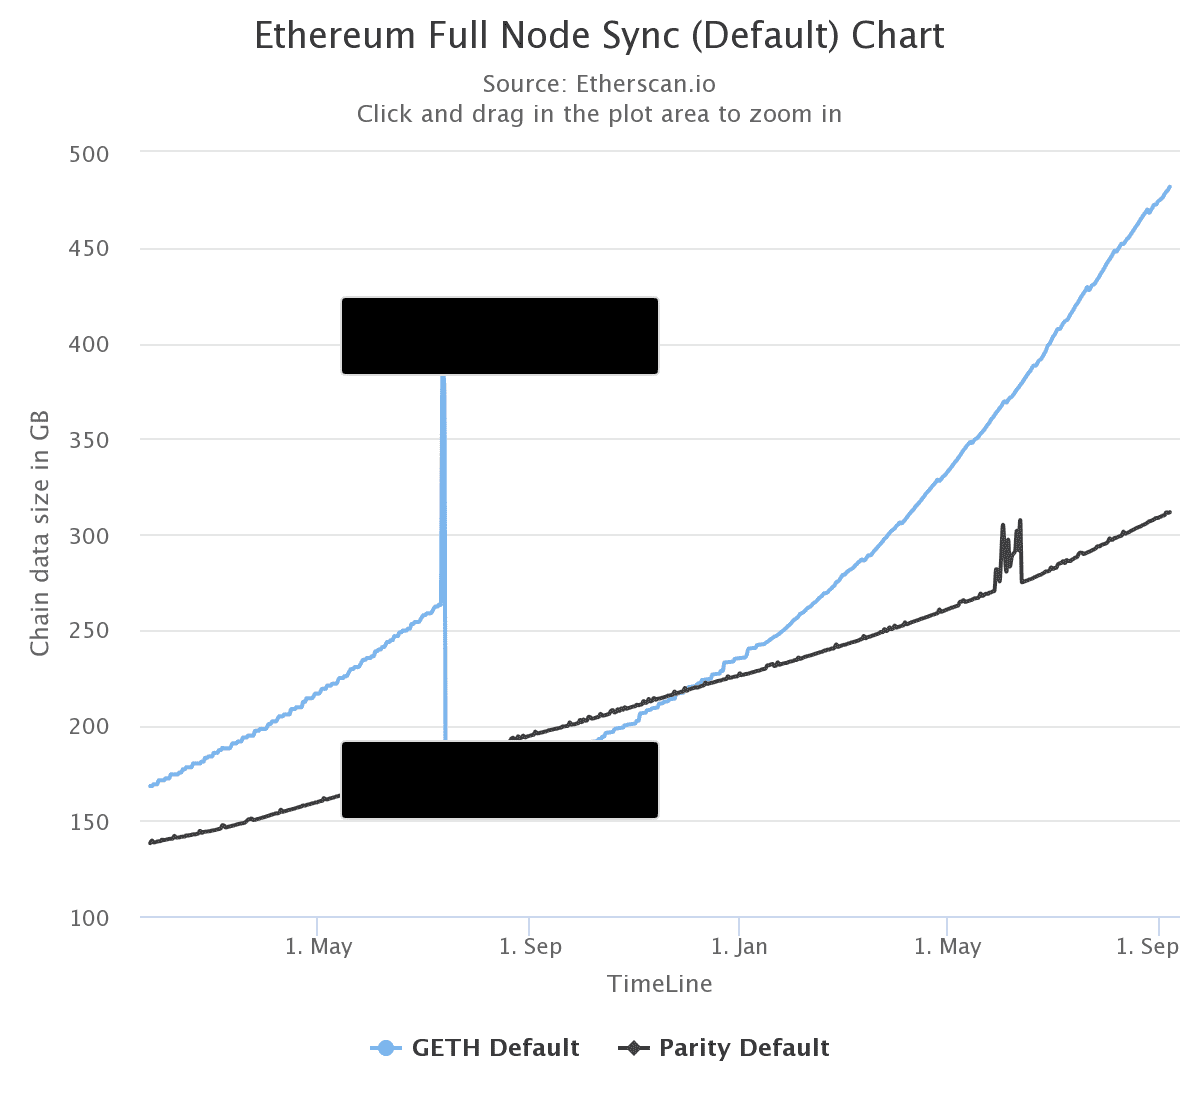 A chart showing that GB needed for a full sync is trending up